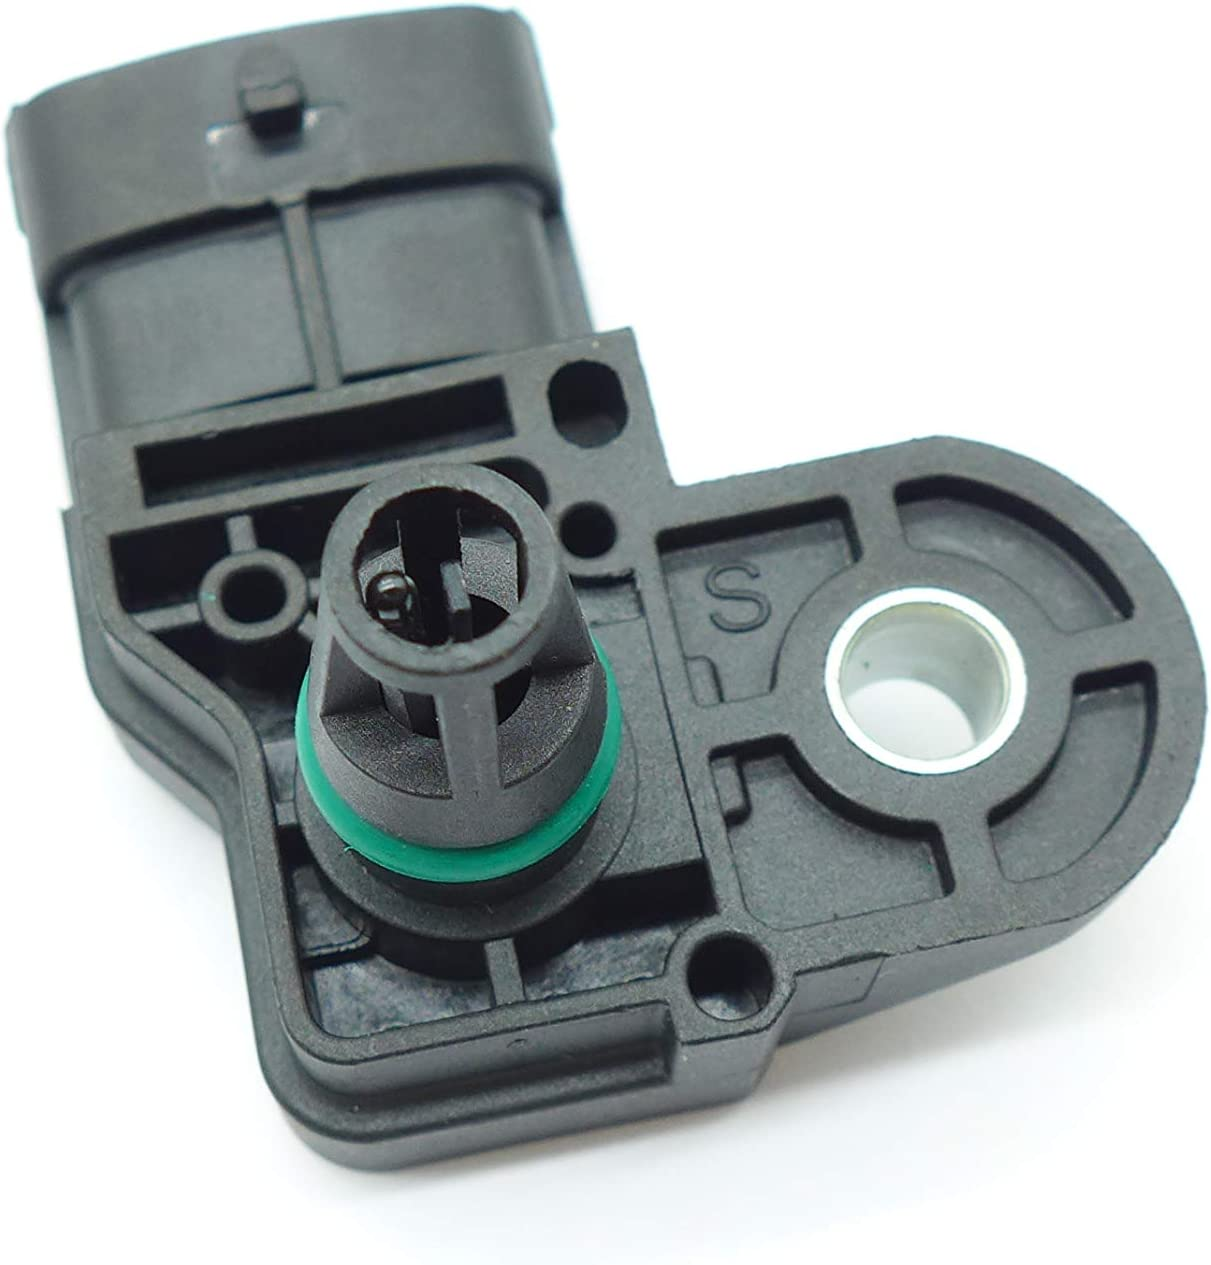 Fits for Polaris RZR 570 800 900 1000 EFI For Polaris T-Map Sensor Air Flow Sensor 2411528 2410422 2411082